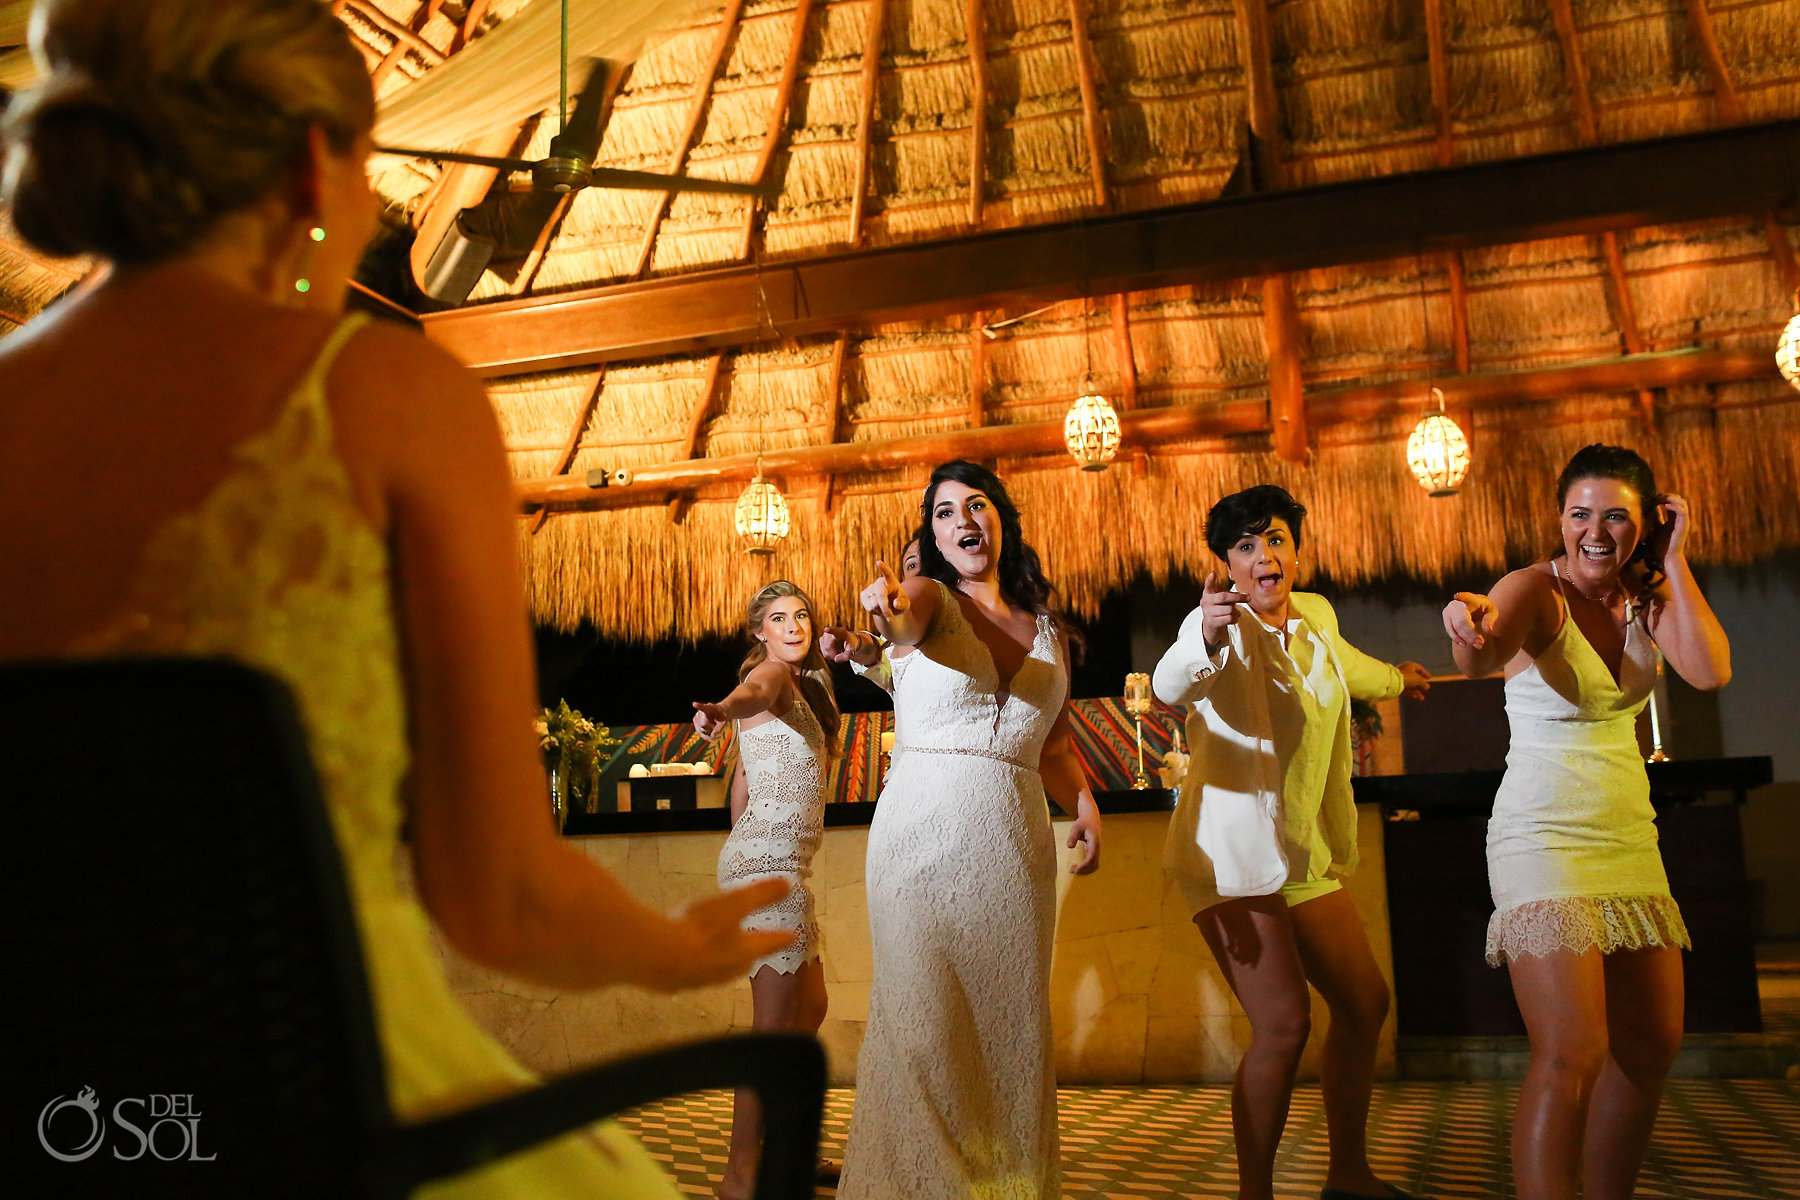 Surprise bride and bridesmaid party dance for lesbian couple Wedding reception Zama Beach